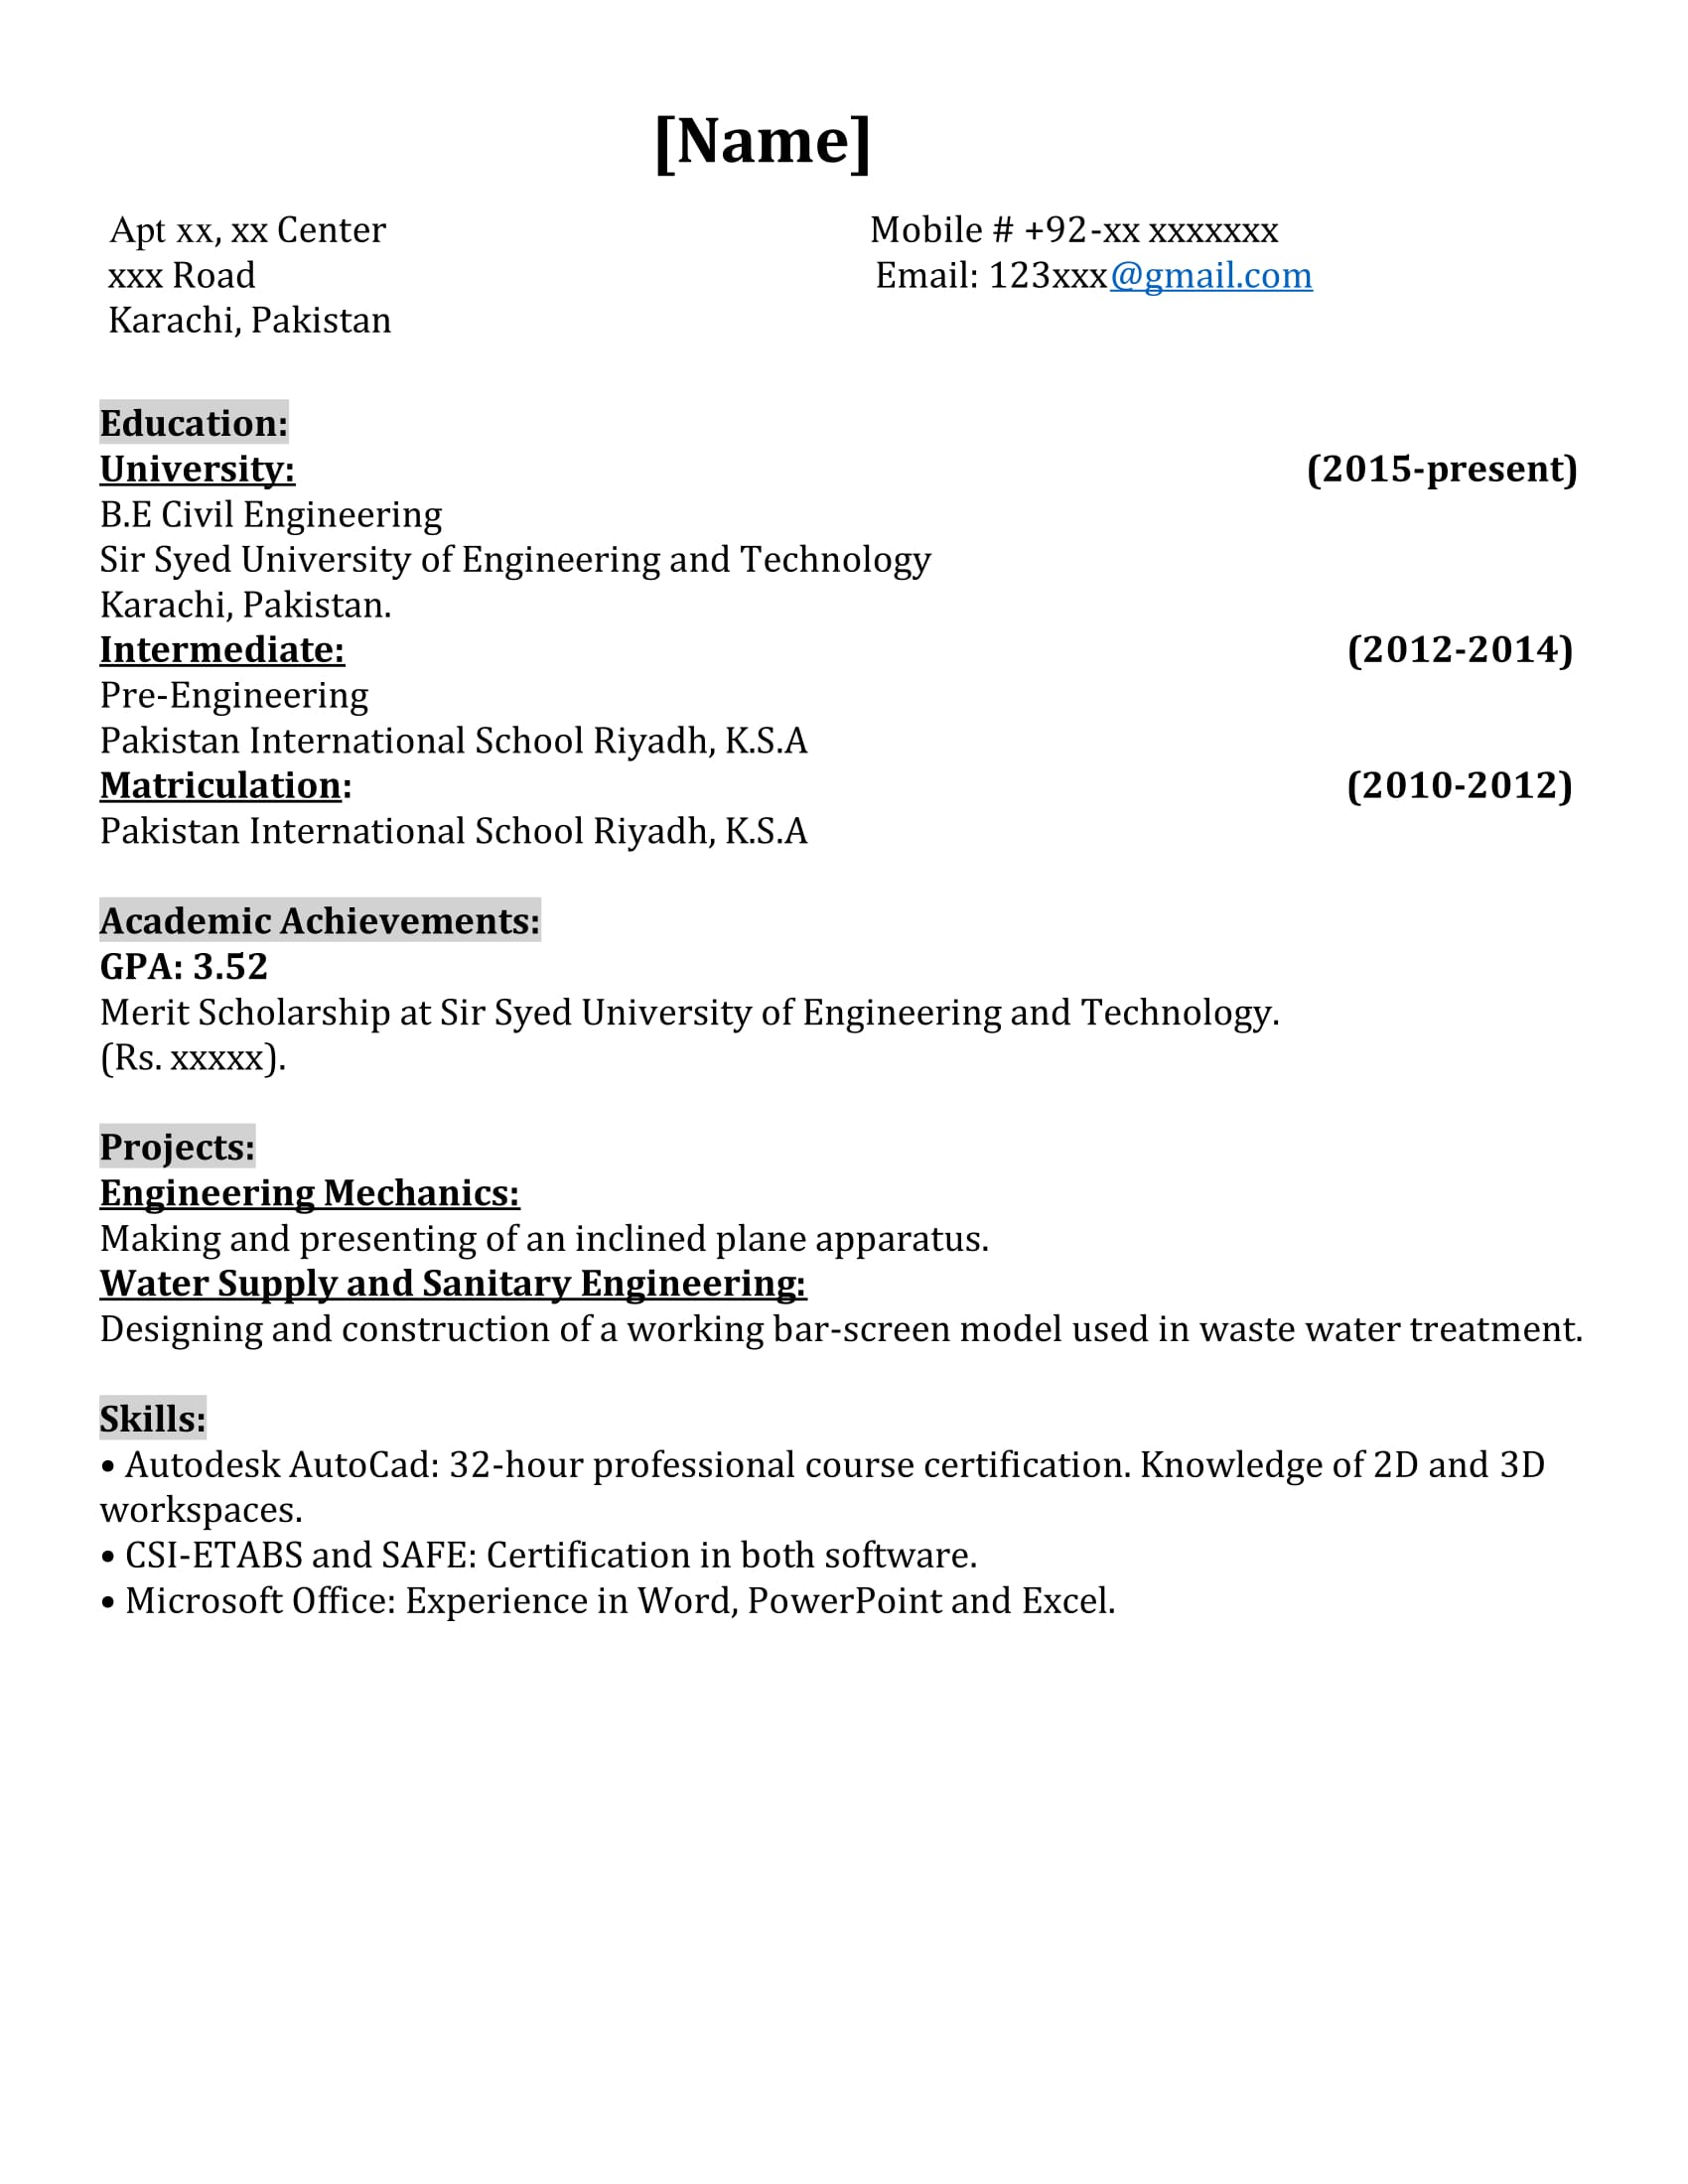 internship resume 1st draft kindly critique civil engineering student in starting 7th Resume Engineering Internship Resume